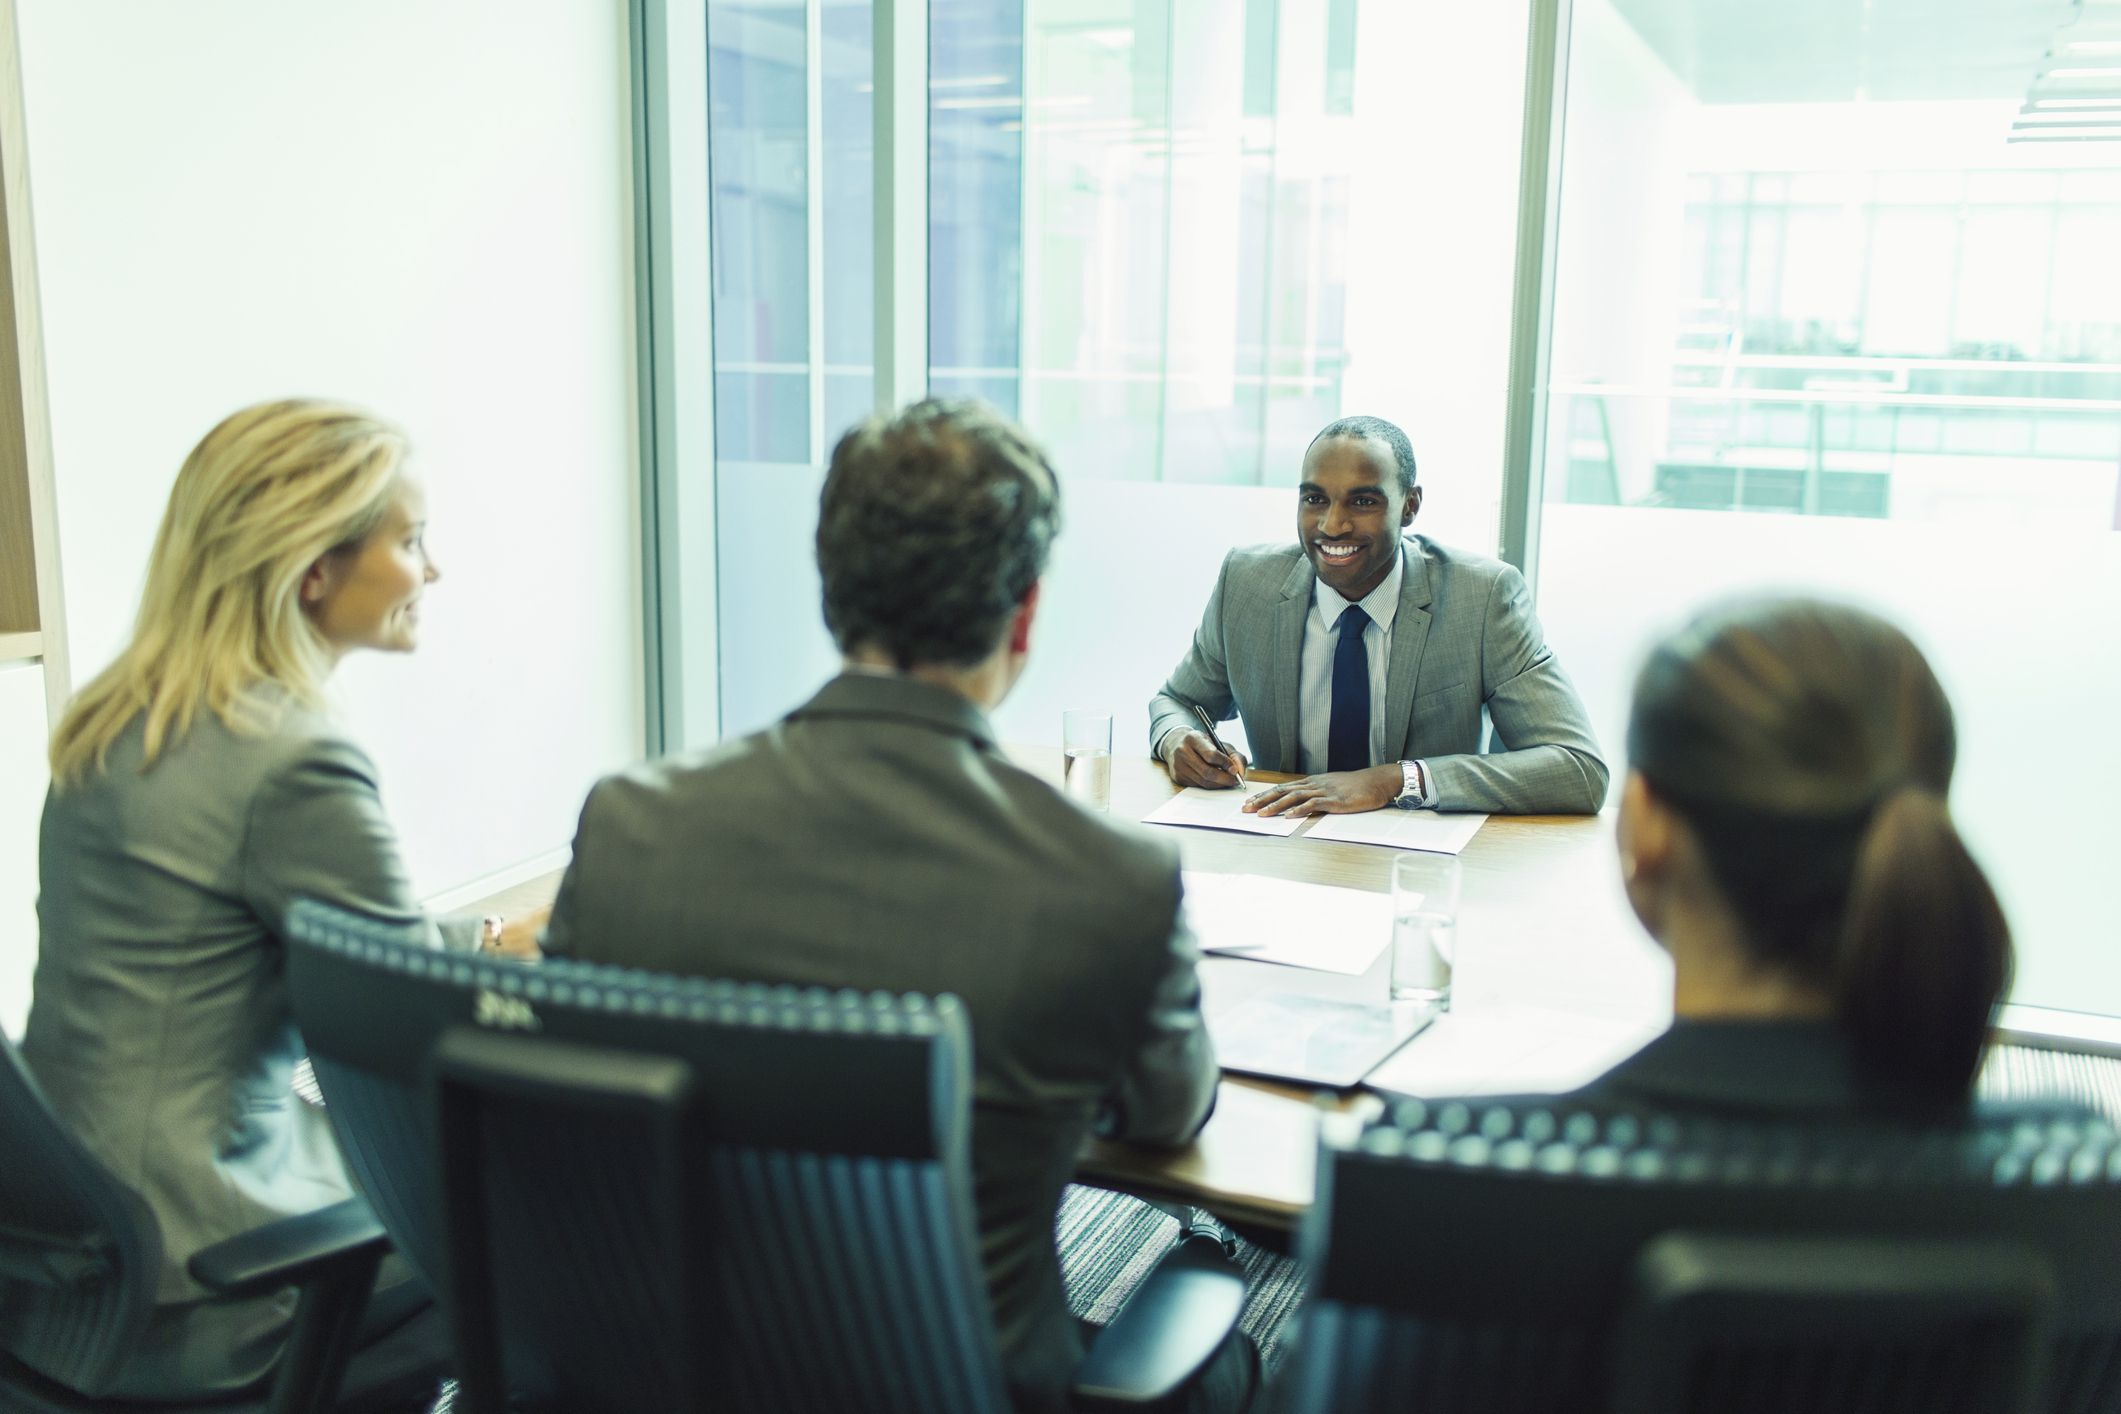 interview questions about achieving your goals businesswoman interviewing job applicant - What Are Your Expectations For The Job What Is Your Expected Salary